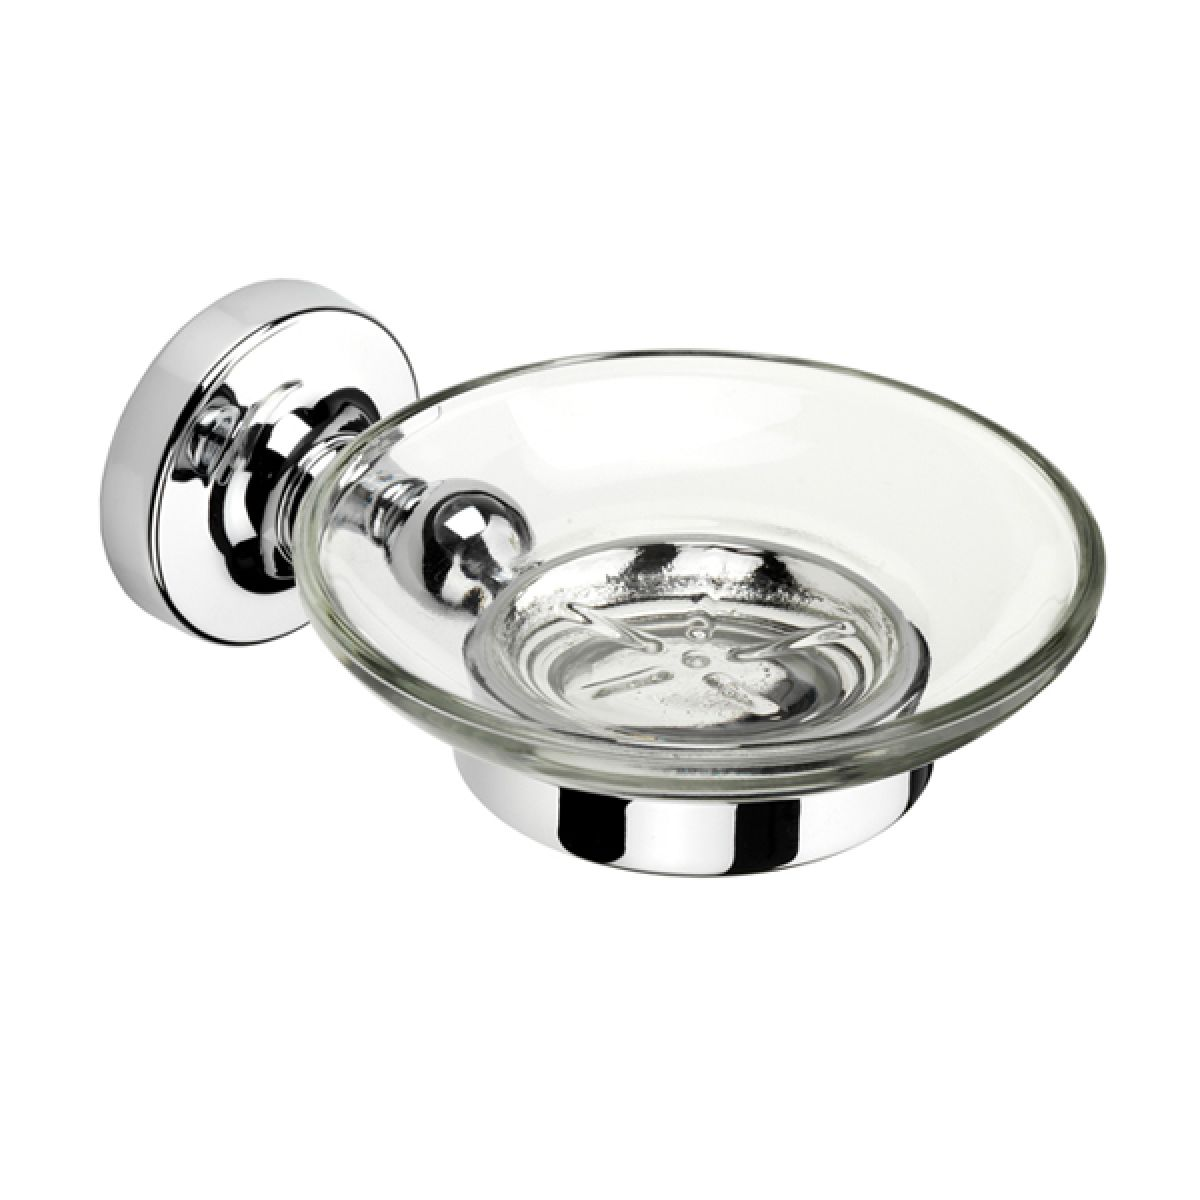 Croydex Worcester Soap Dish and Holder